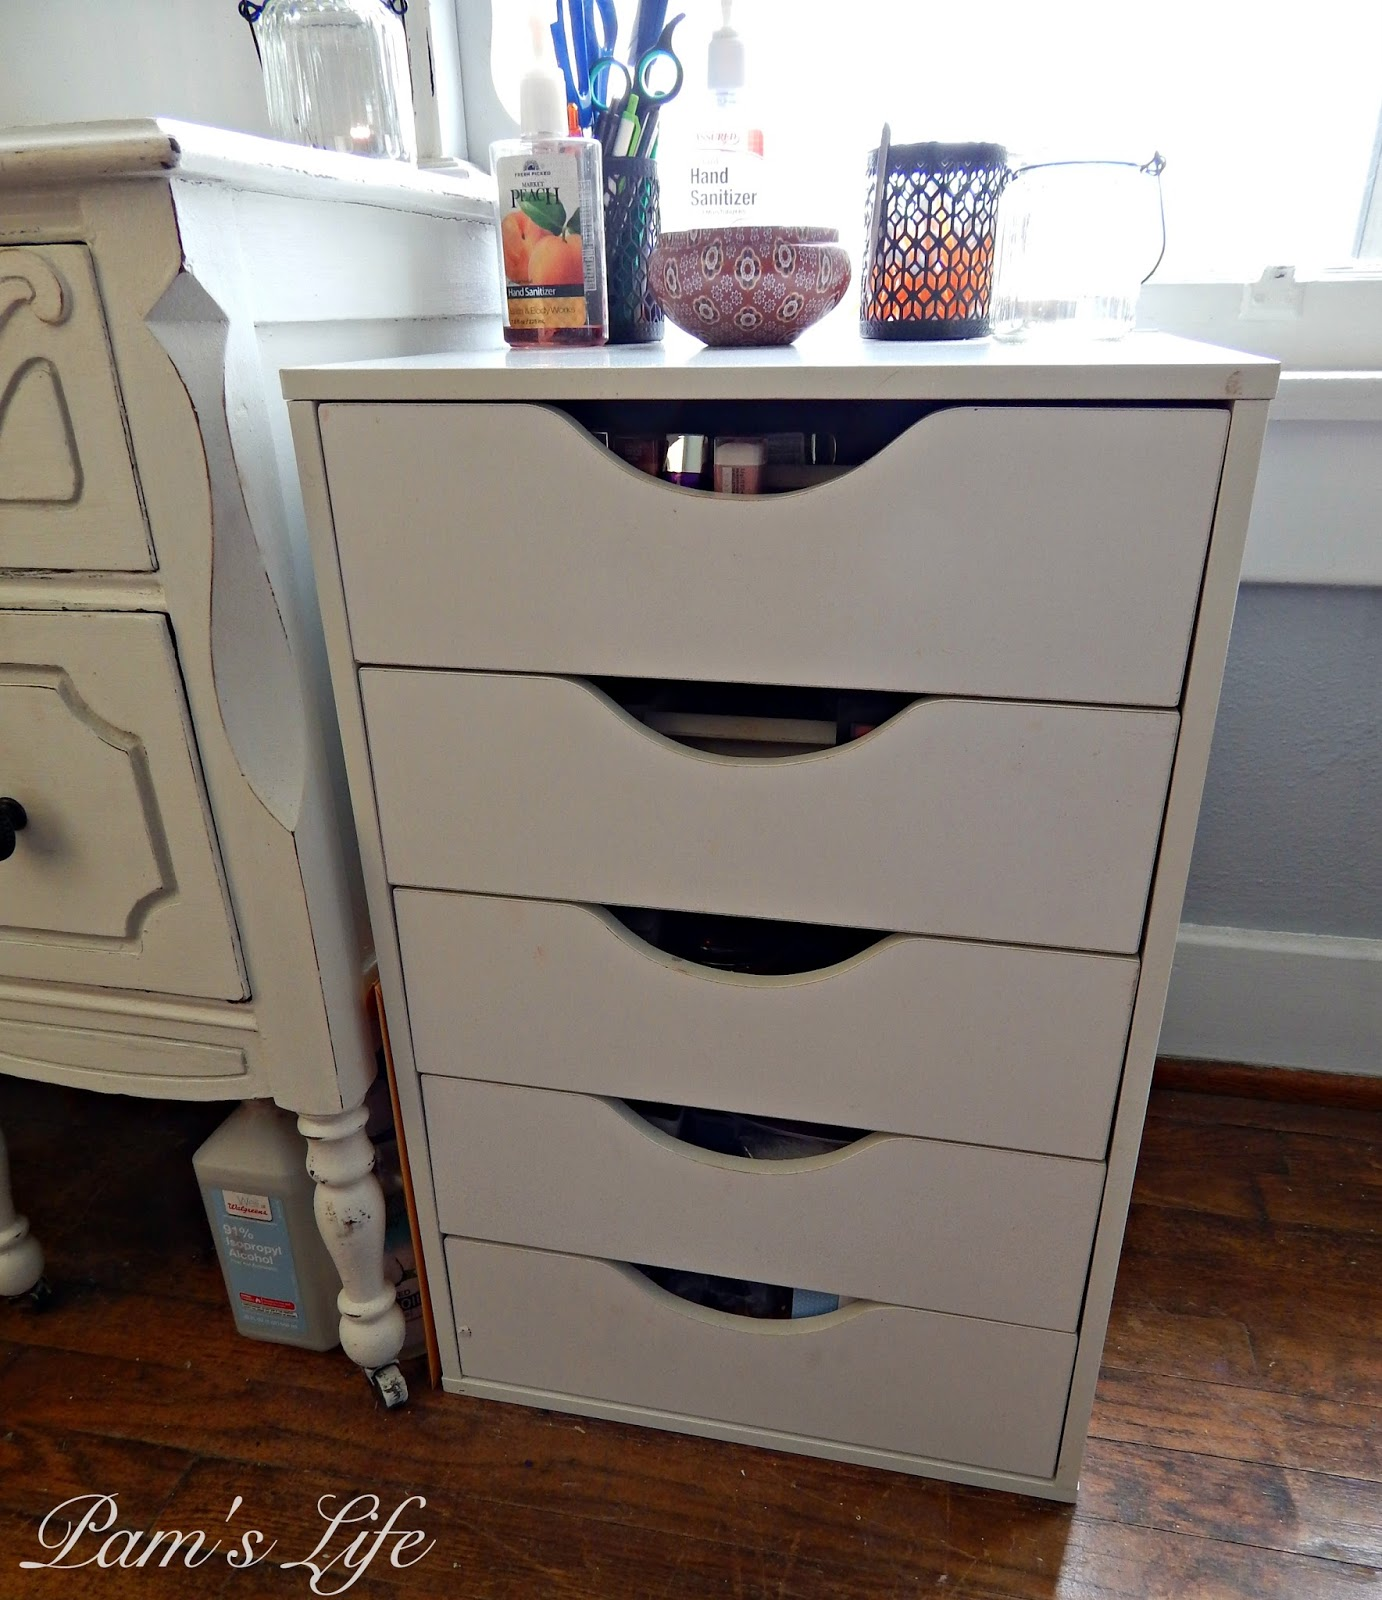 Pam's Life: Storage Solution: Dupe For The Alex Drawers